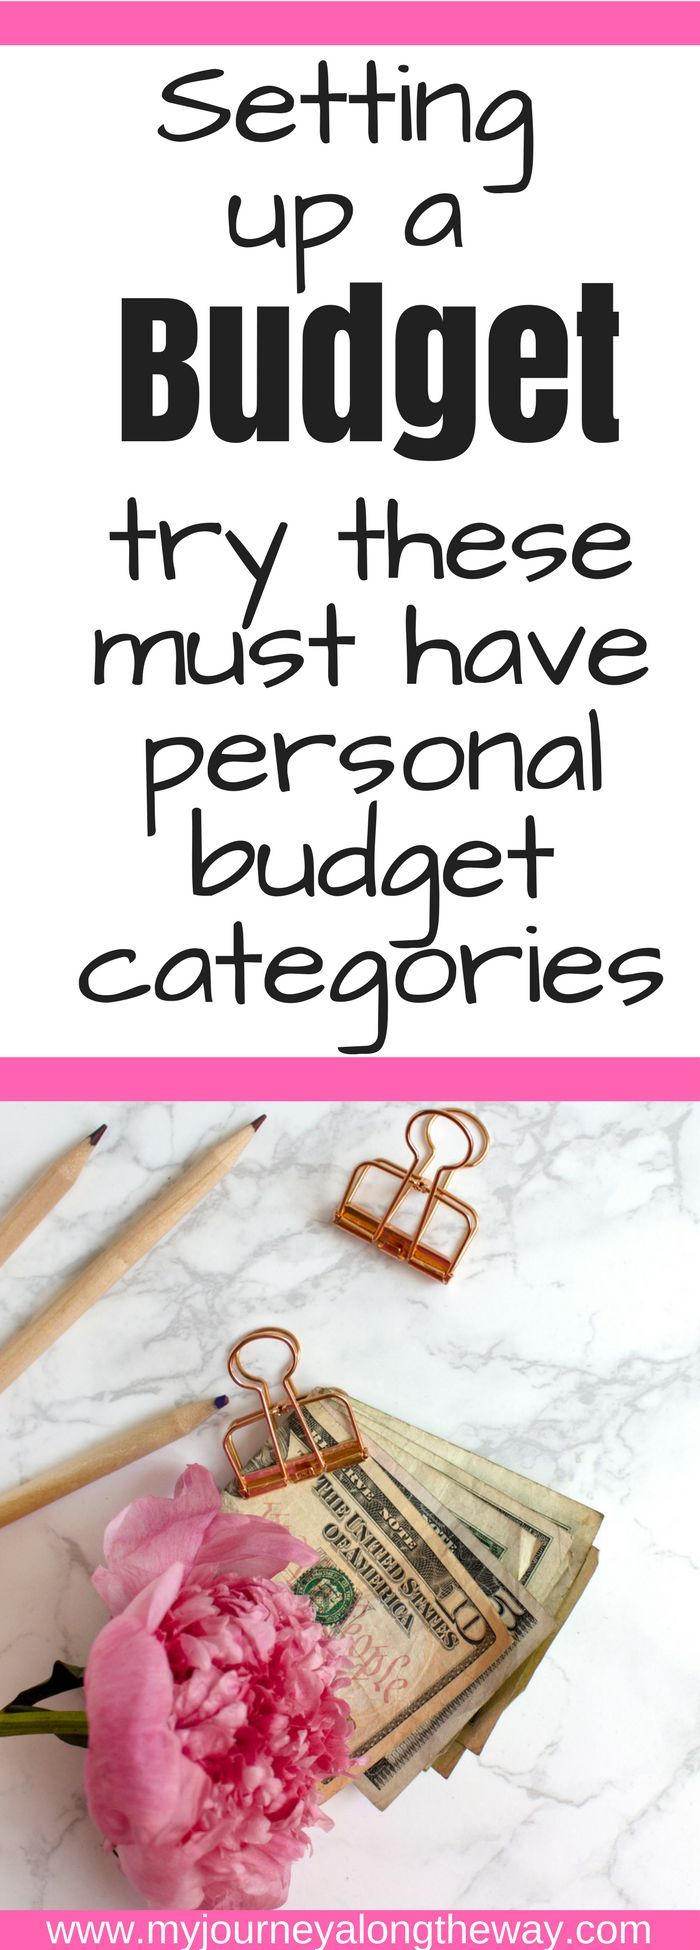 Setting up a budget can be a lot easier using using these must have personal budget categories.